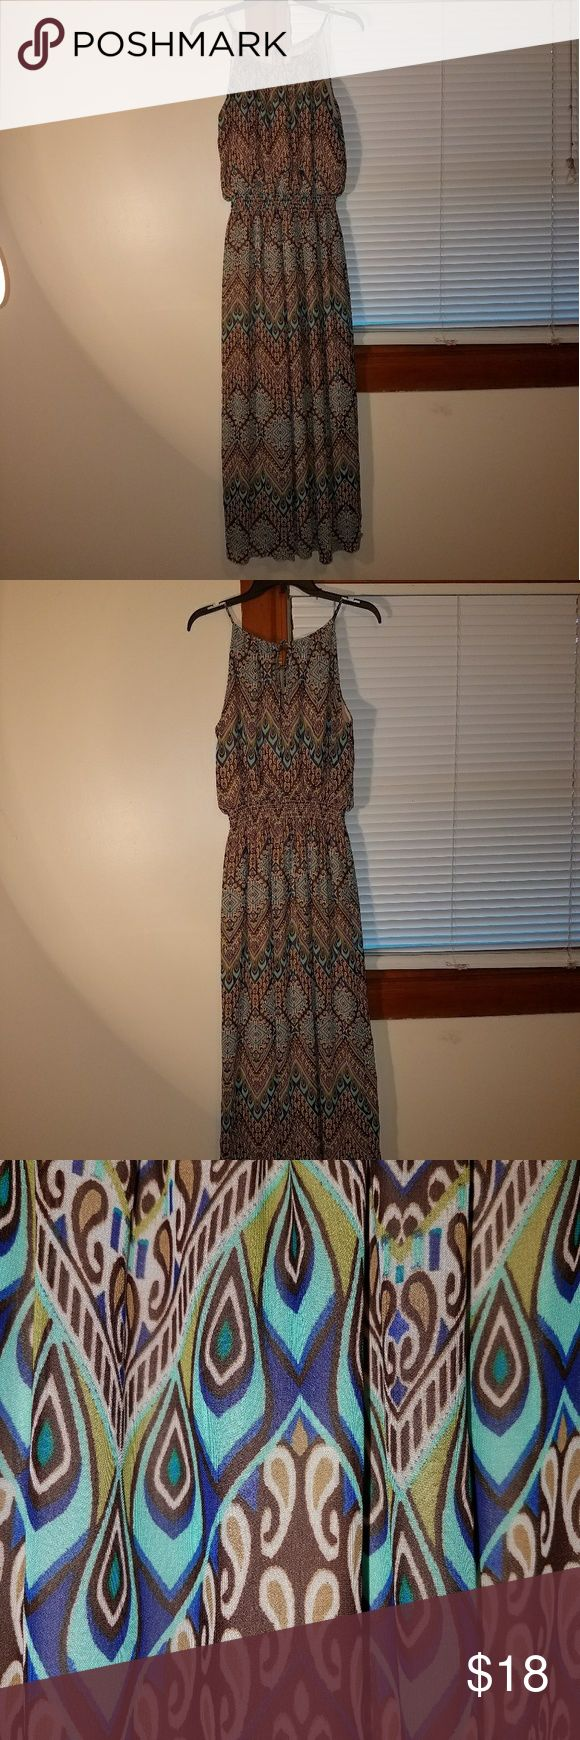 Beautiful summer/fall dress Multicolored dress in size 14 Dresses Maxi